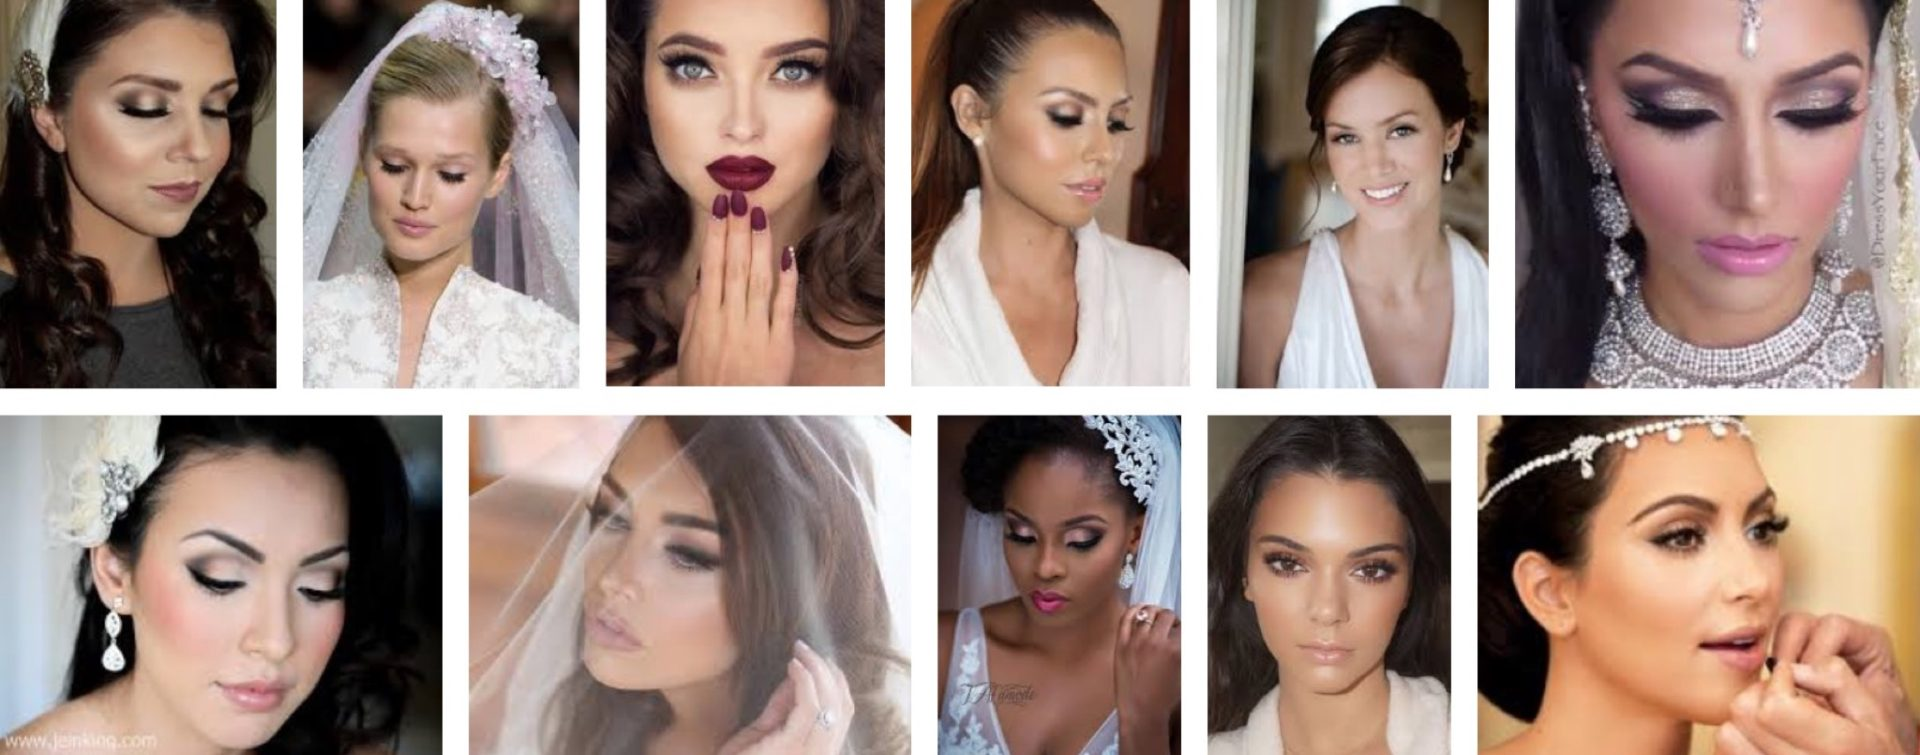 Should You Show Your Makeup Artist Inspiration Photos? – Lillybeth: A Beautiful Education